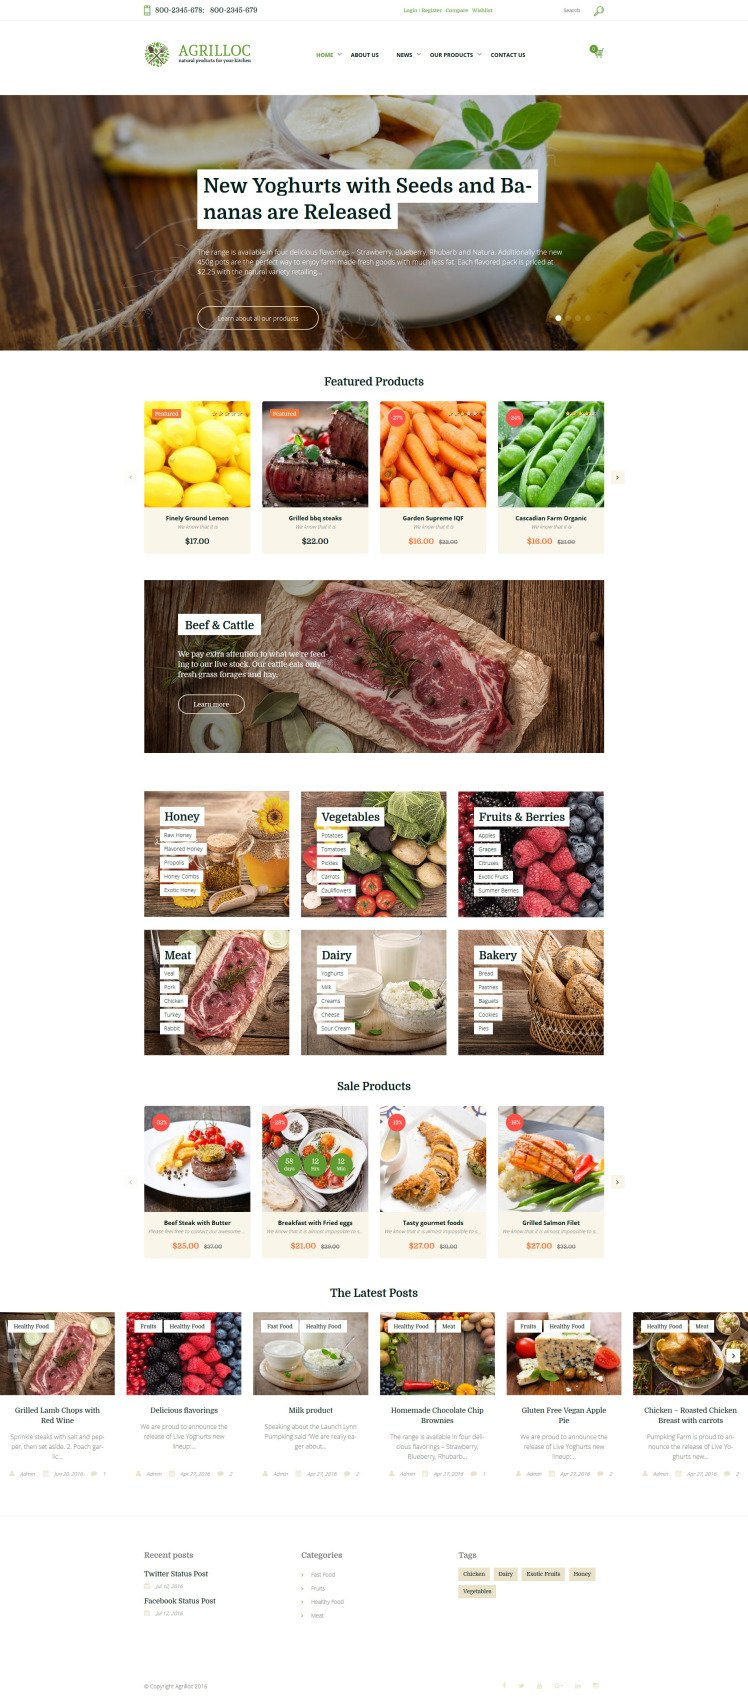 Agrilloc Agricultural Supply Farm Foods WooCommerce Themes